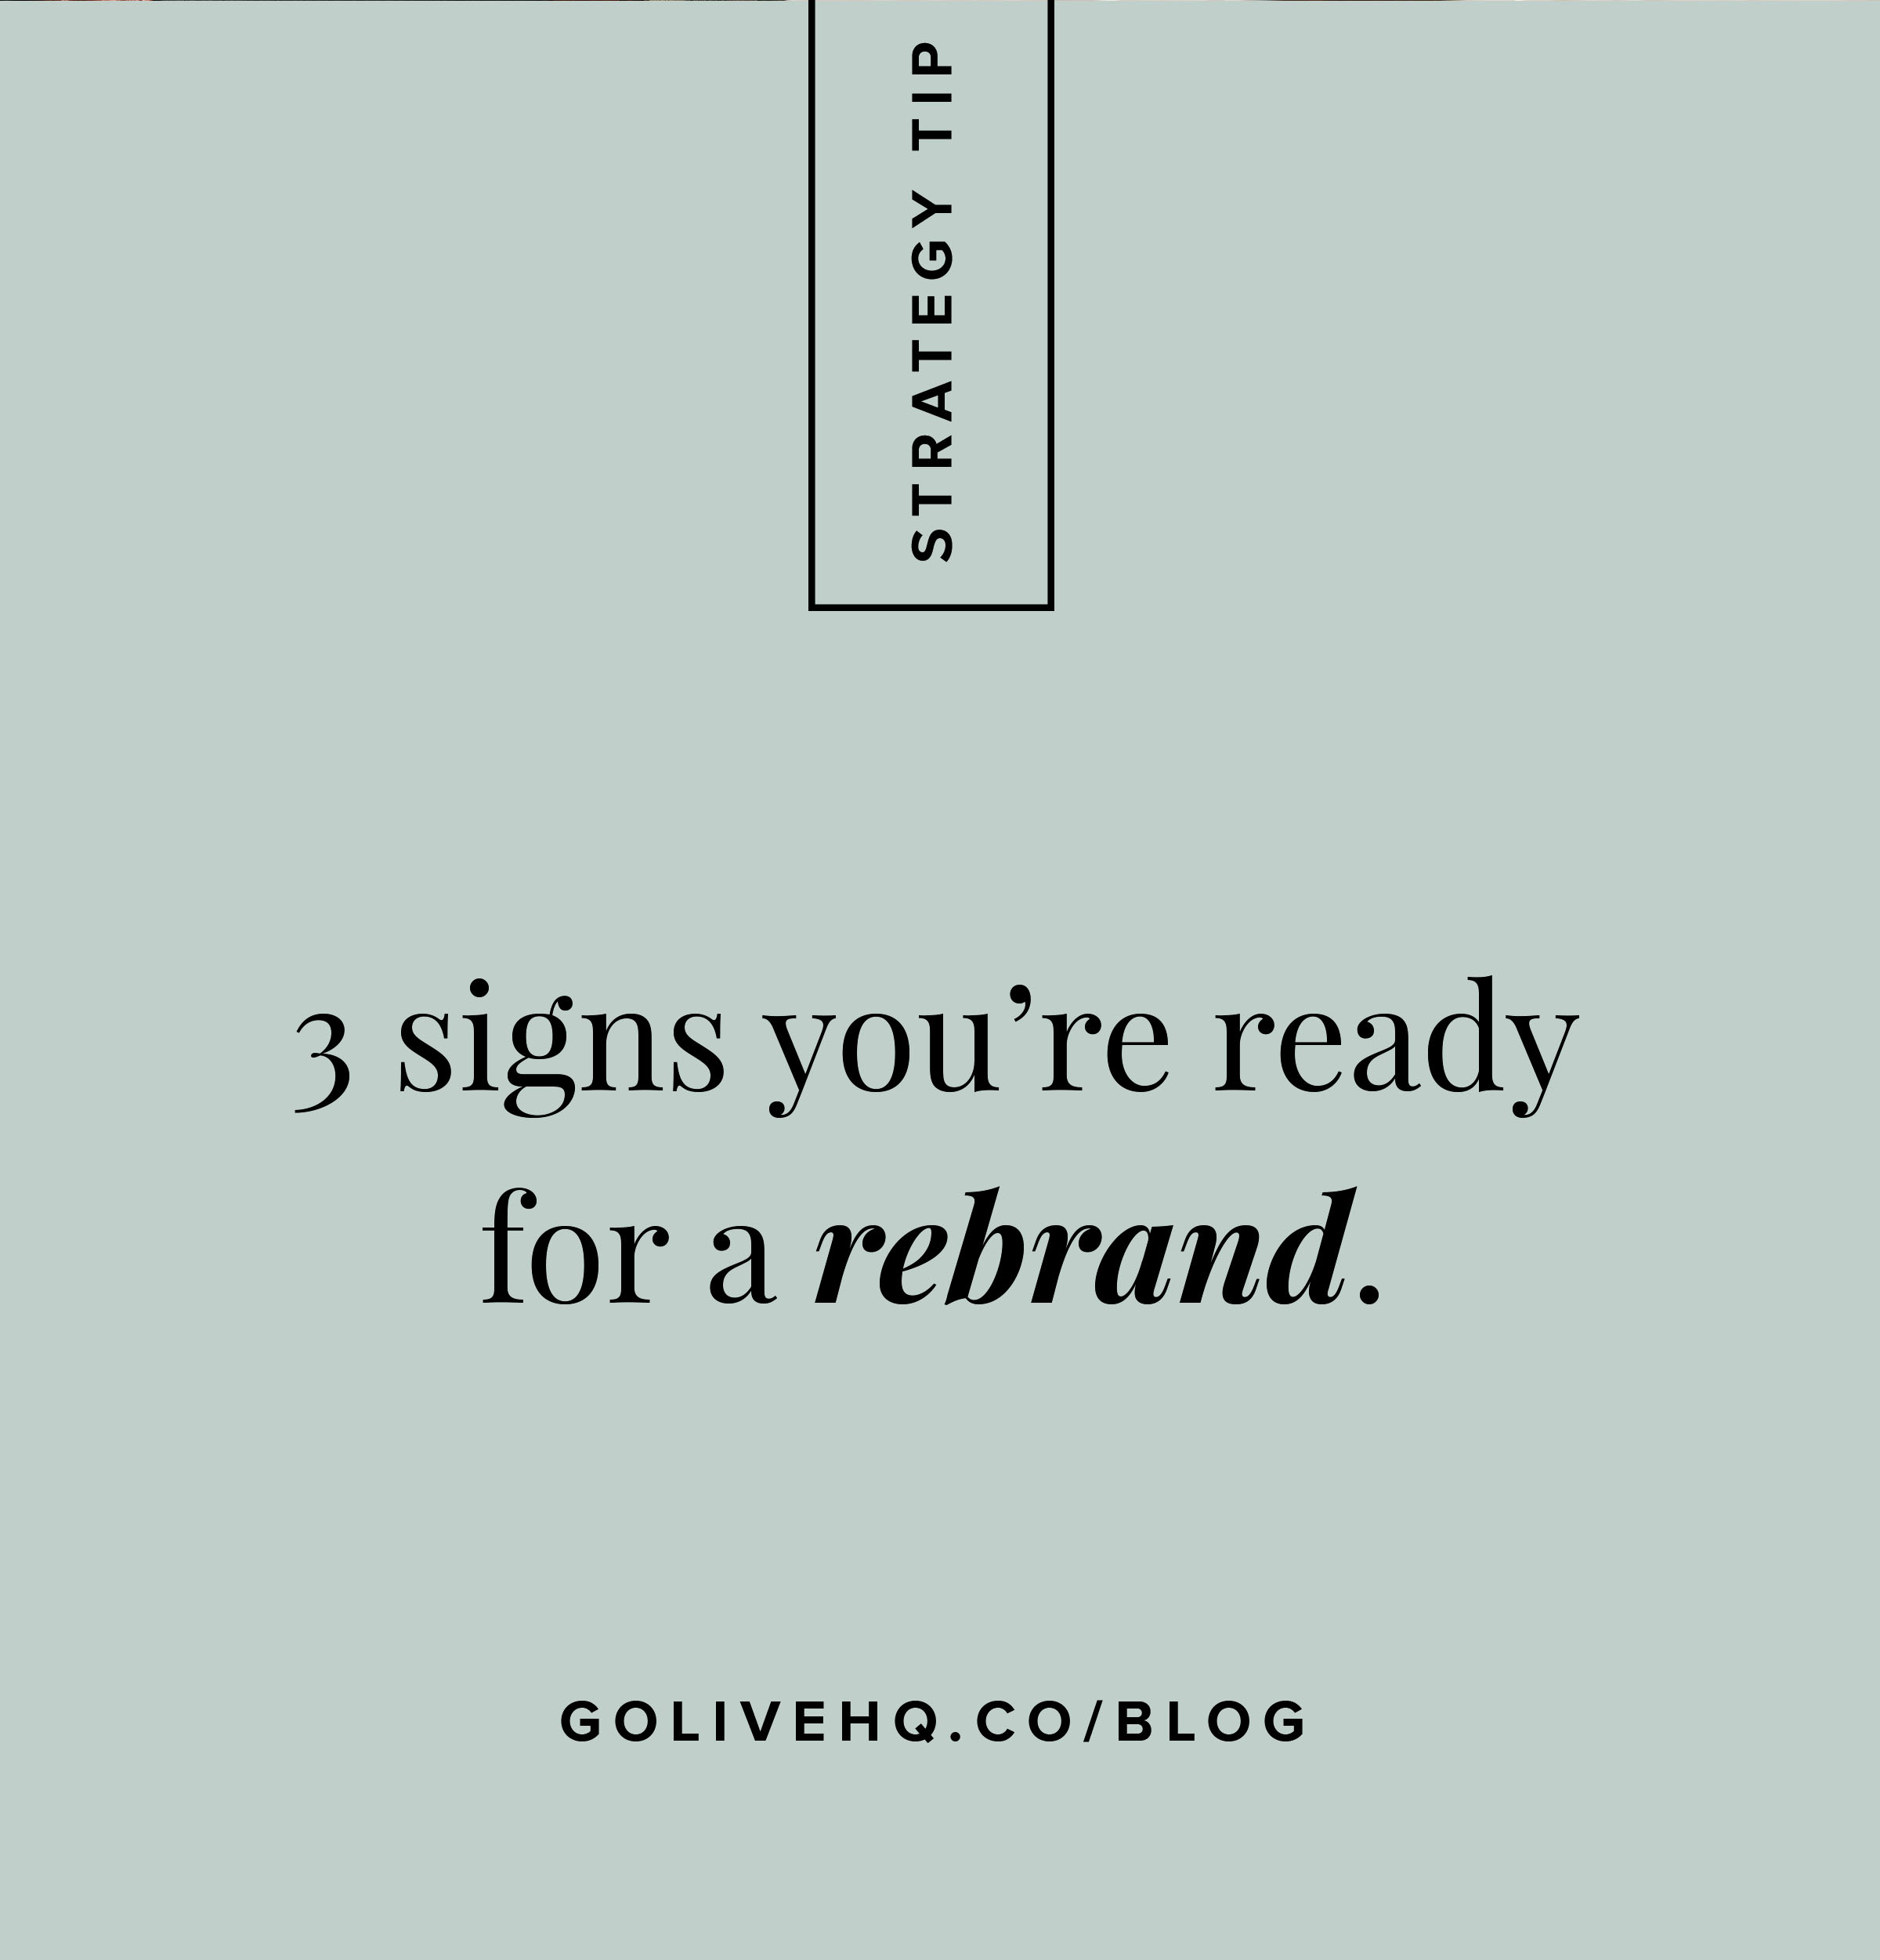 signs+you're+ready+for+a+rebrand++ ++Go+Live+Hq.jpeg